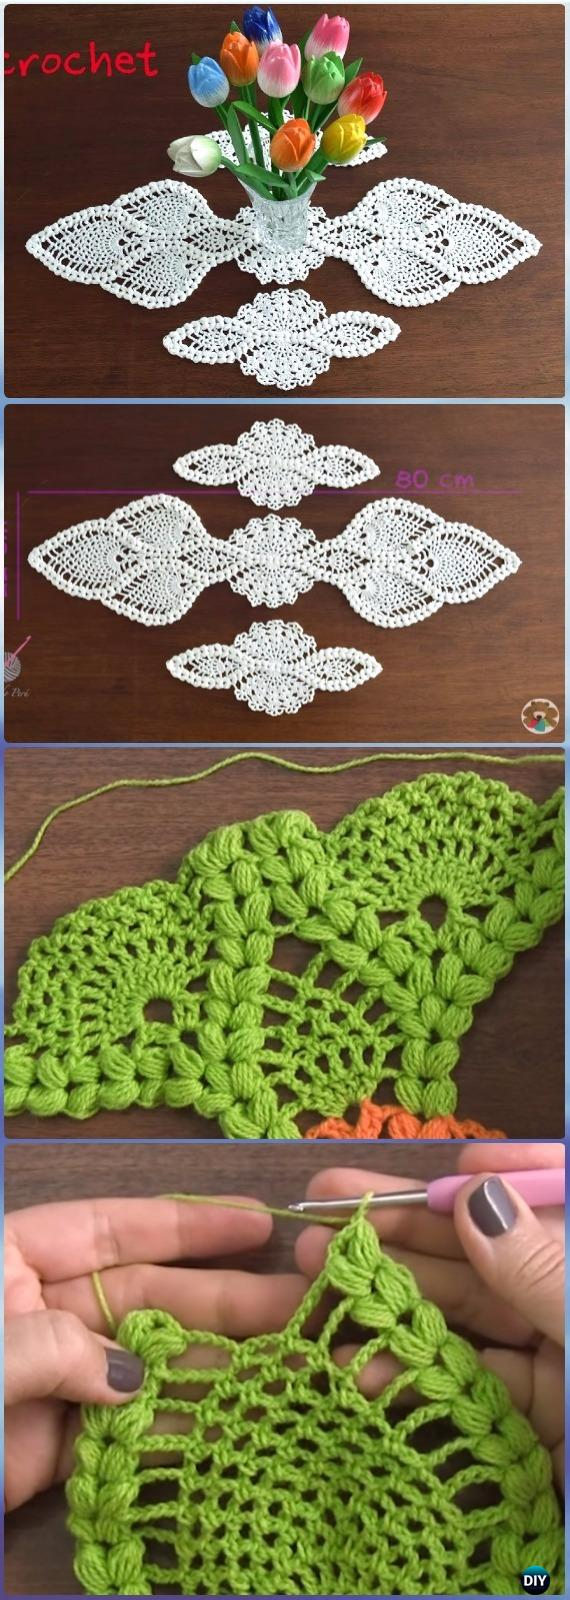 Crochet Table Runner Patterns Easy Amazing Inspiration Ideas